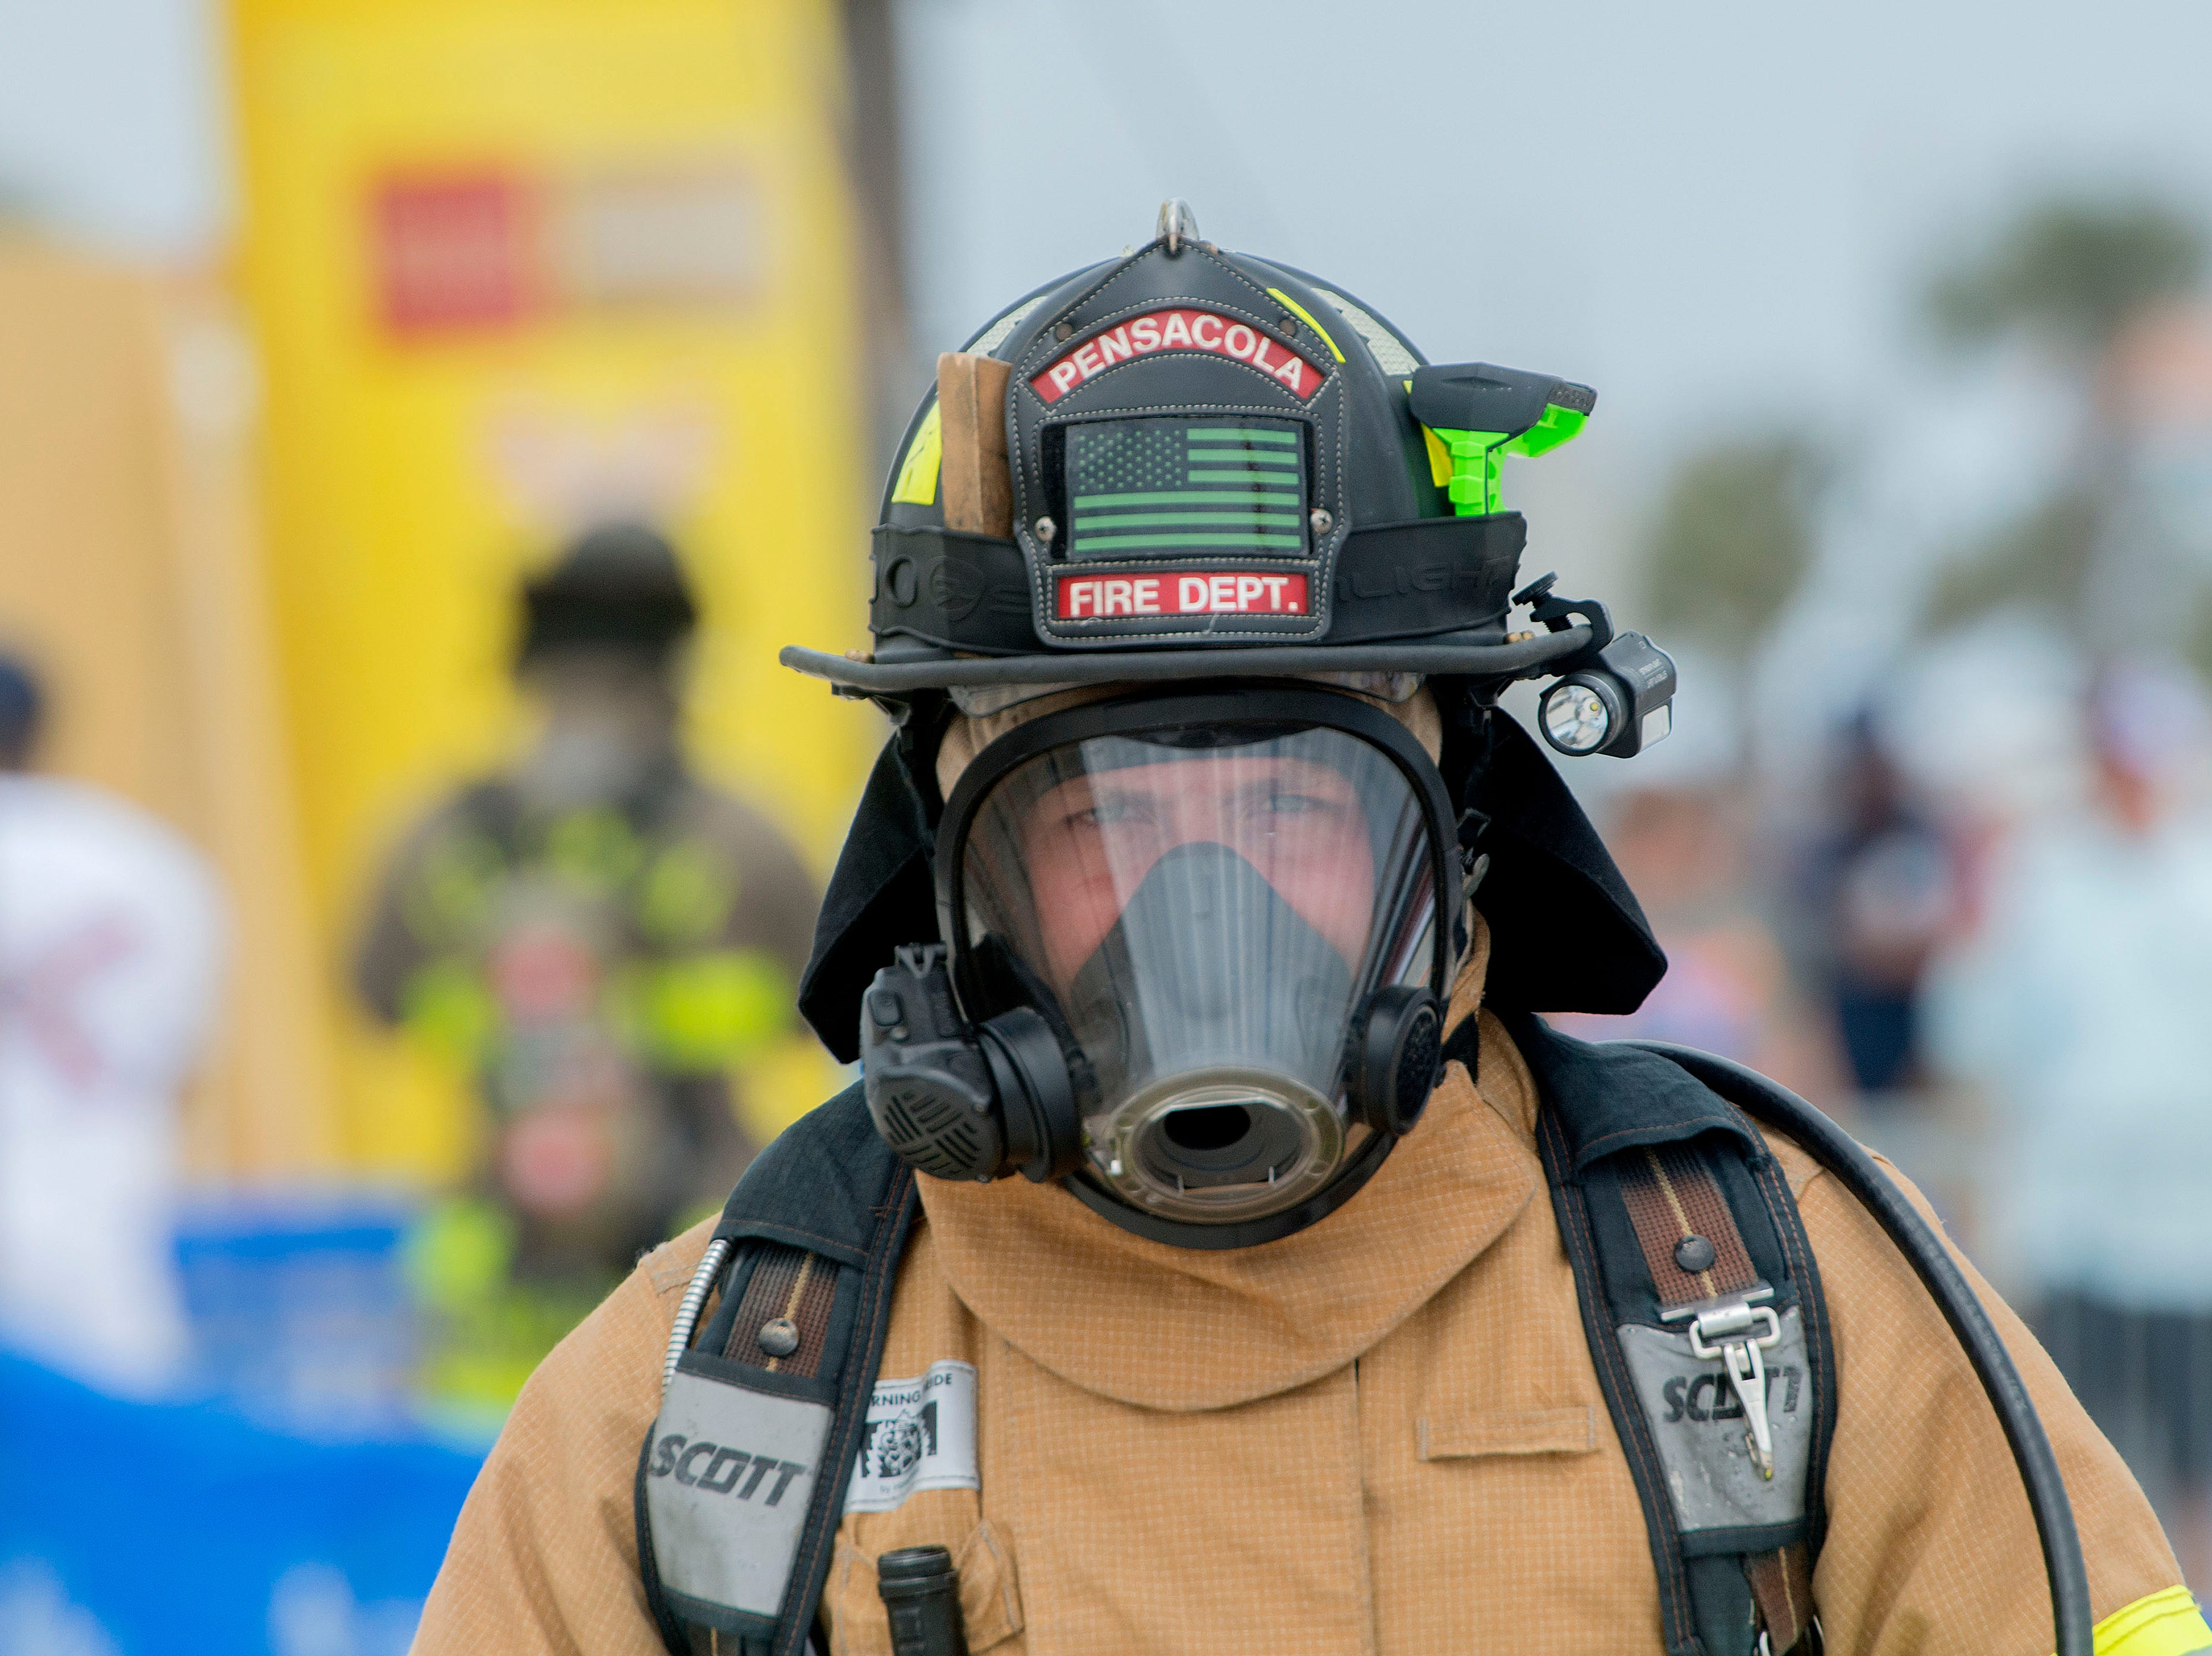 Firefighters compete during the fifth annual Pensacola Beach Firefighters Challenge. The event tested the strength, agility, teamwork, and skills of firefighters as well as provided a fun, family friendly event for participants and the public.